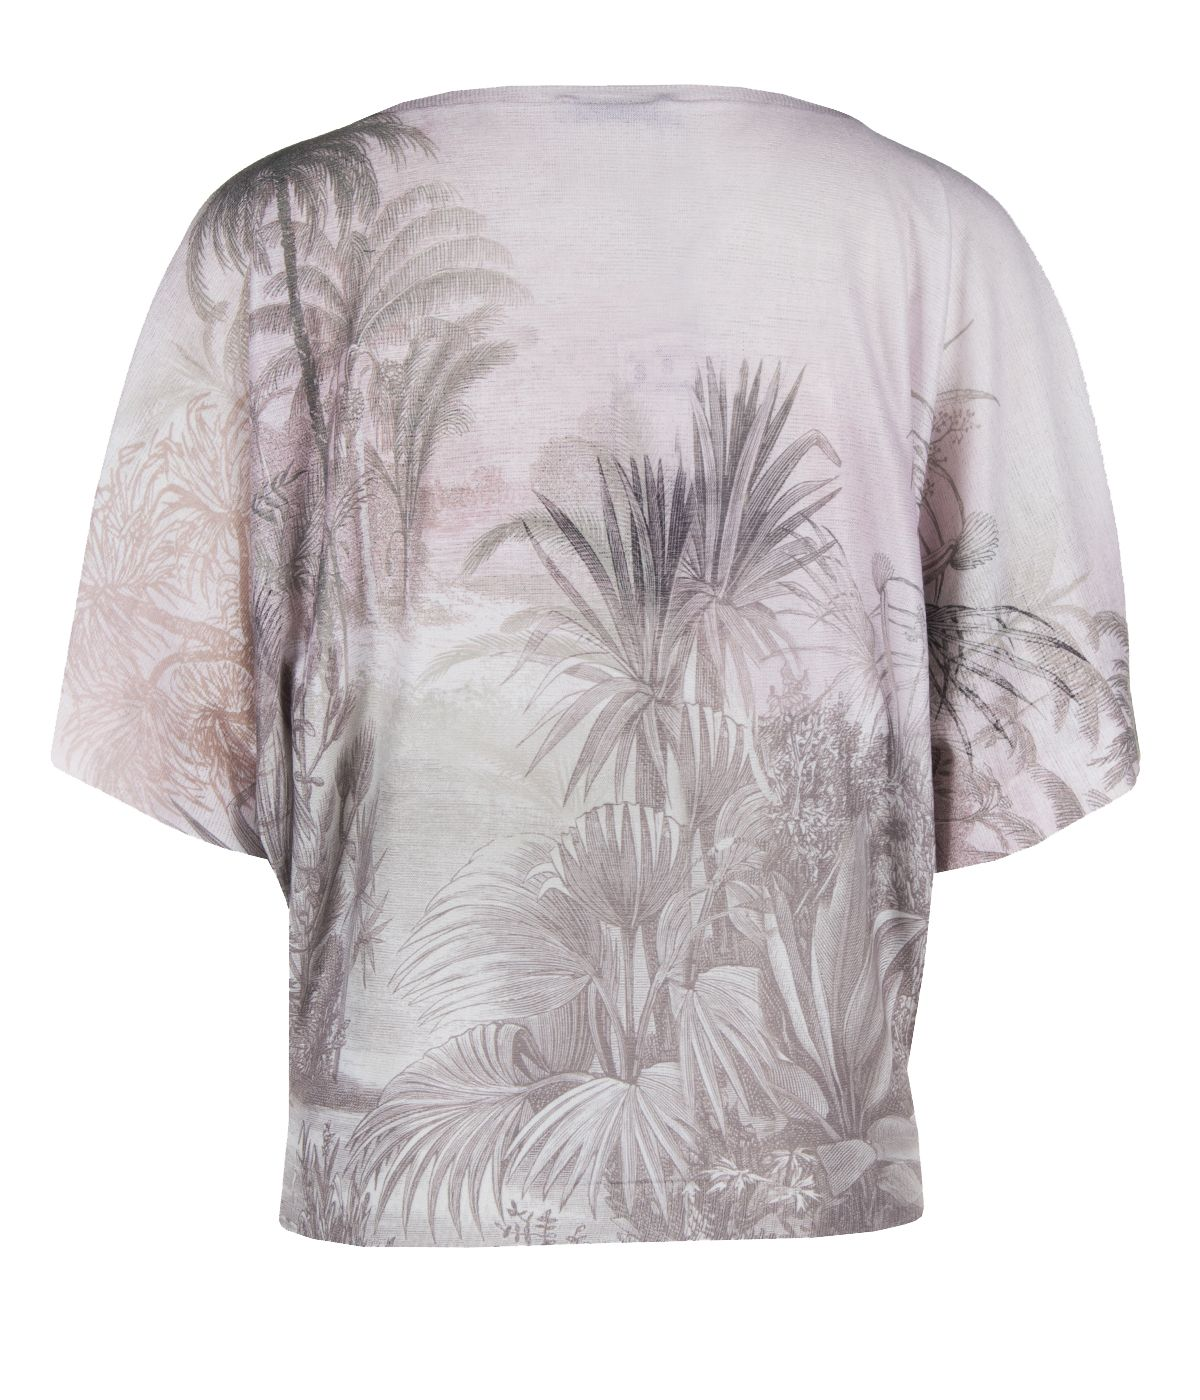 PRINTED BLOUSE WITH PALMS, FLOWERS AND ANIMALS 1